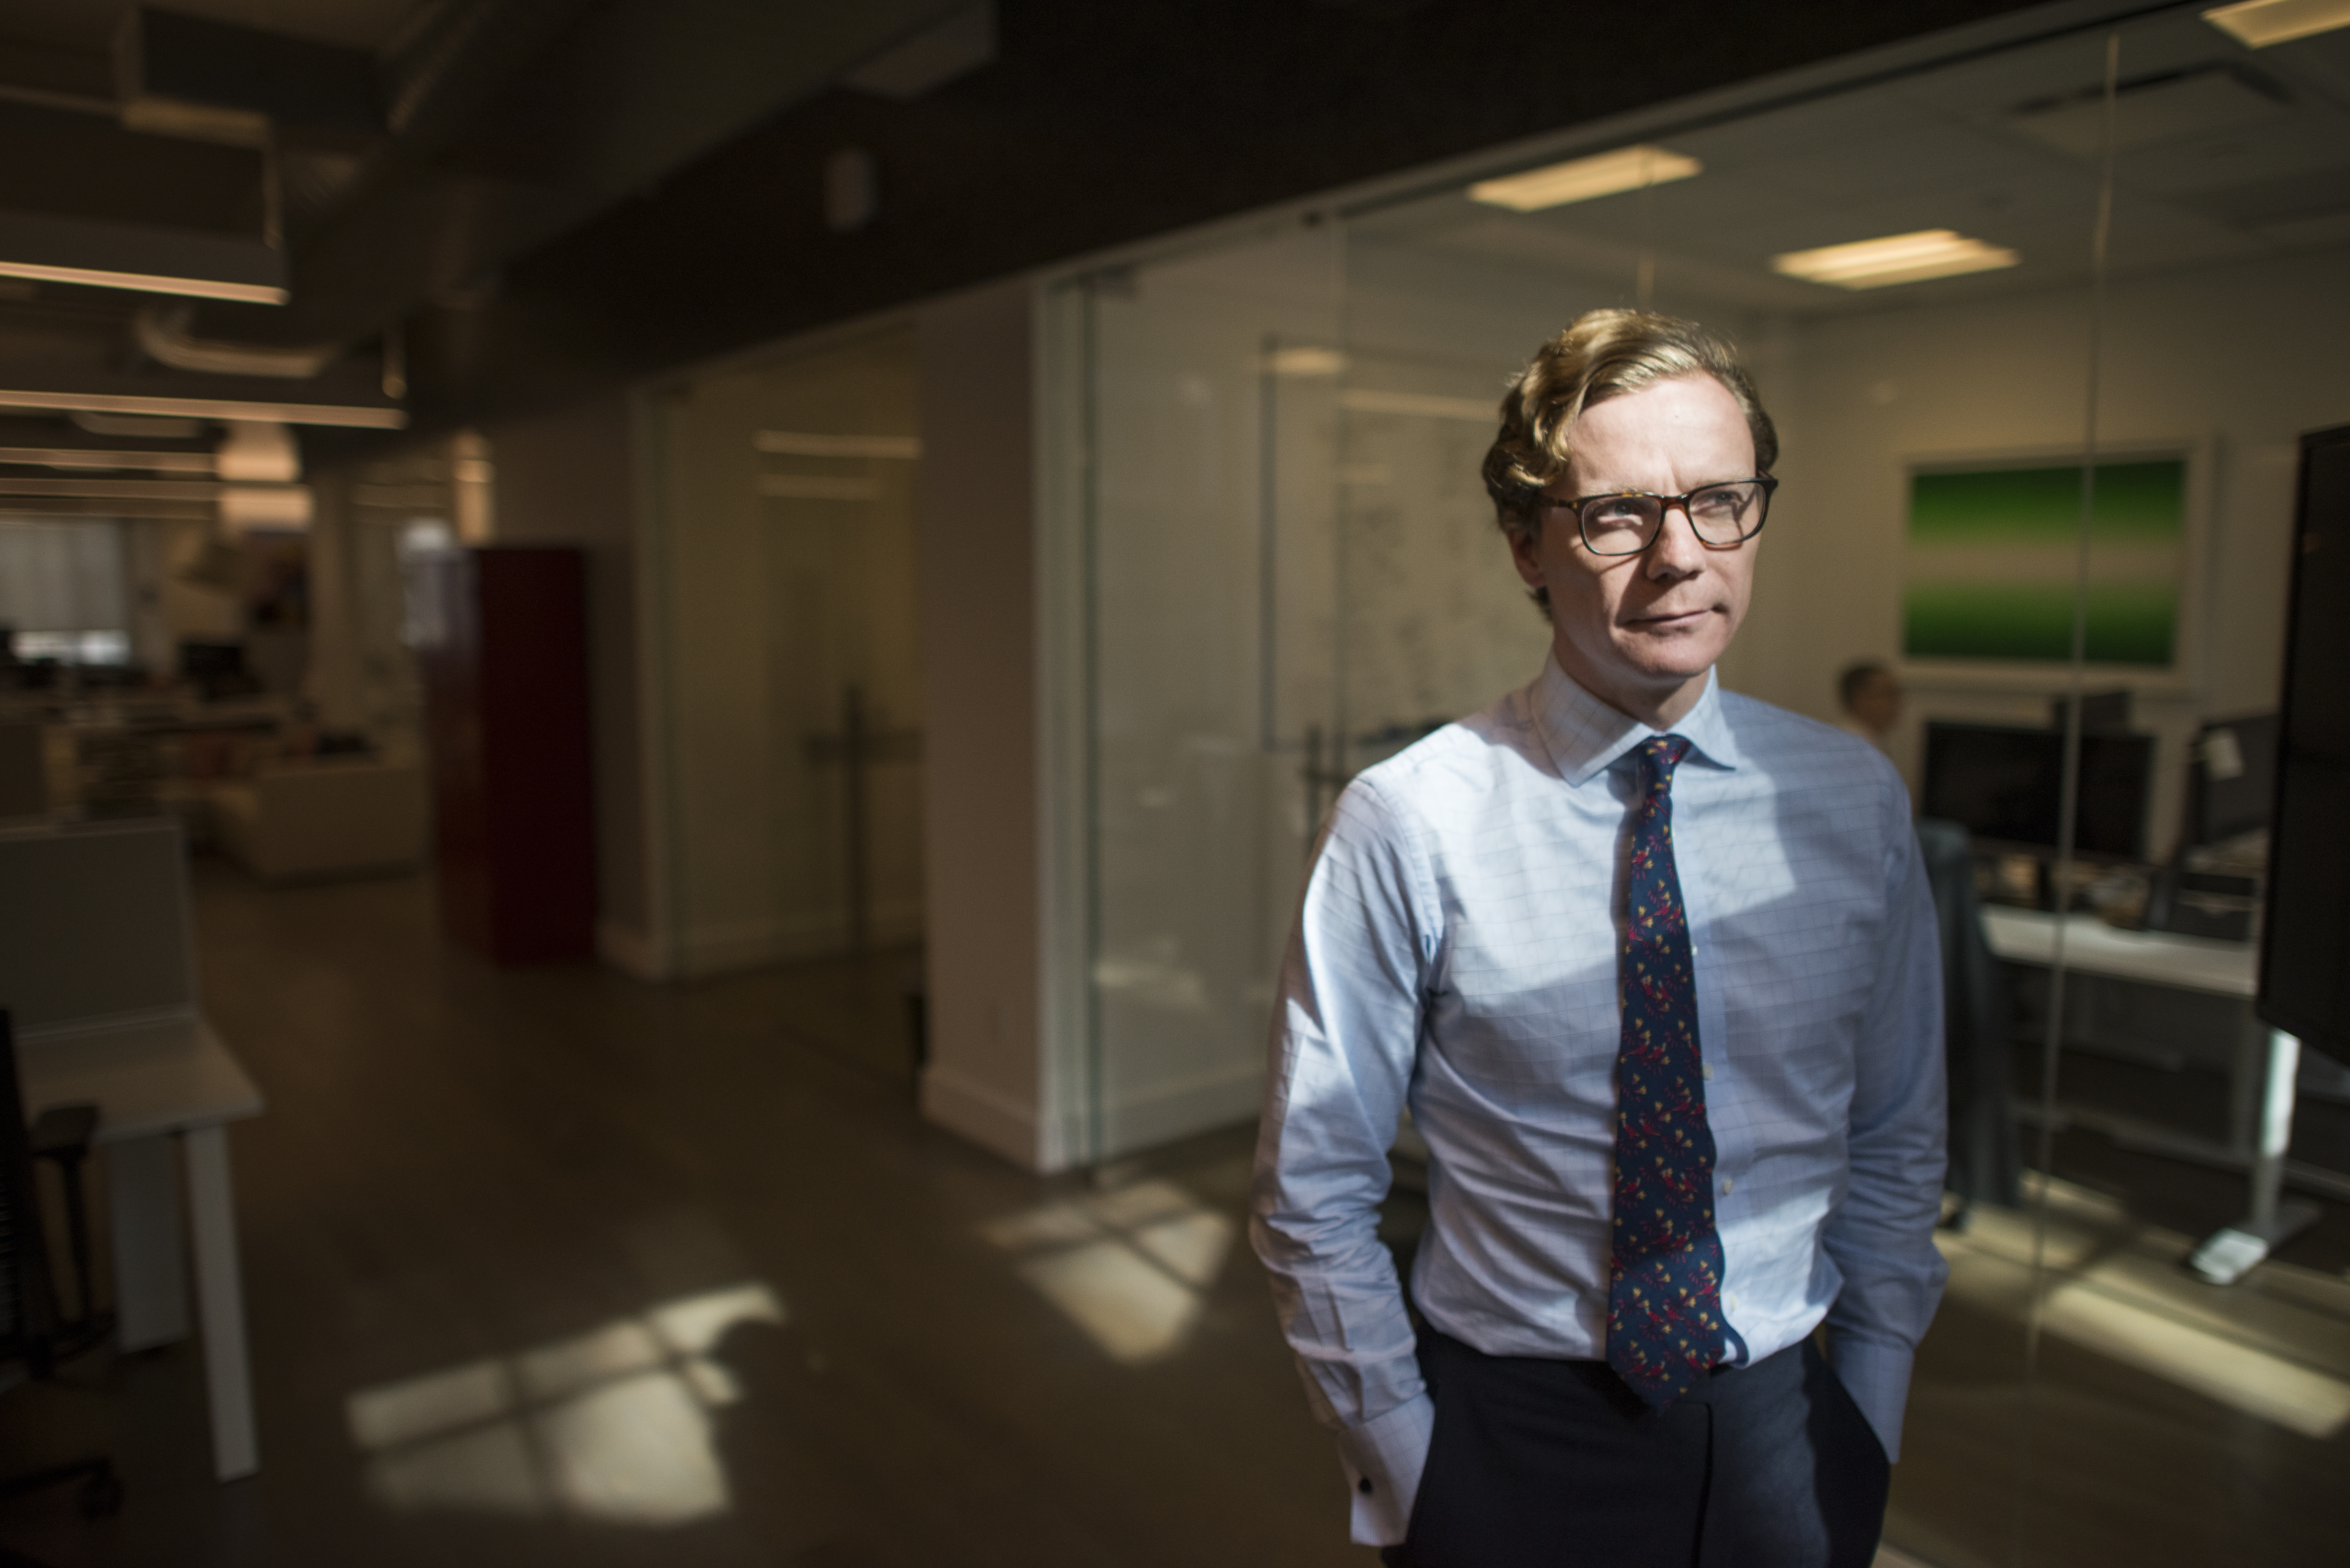 Cambridge Analytica CEO Alexander Nix in an office setting